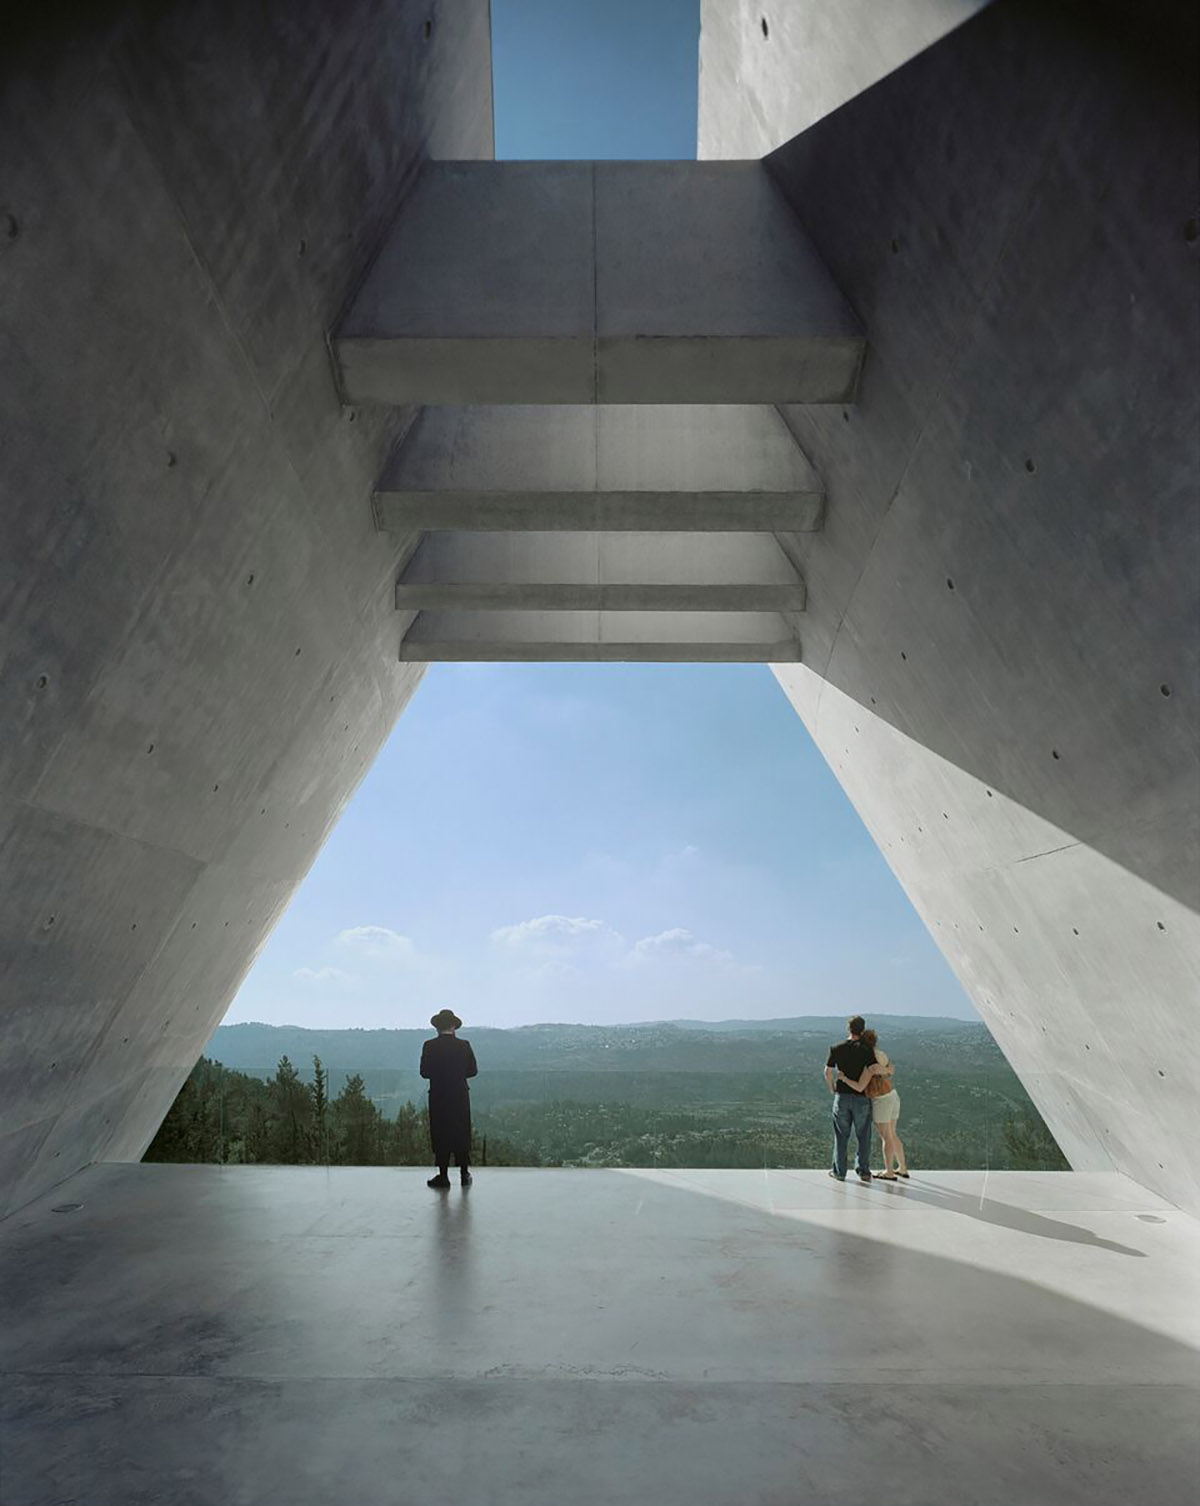 Yad Vashem Holocaust Museum. View at end of prison. Image by Timothy Hursley.